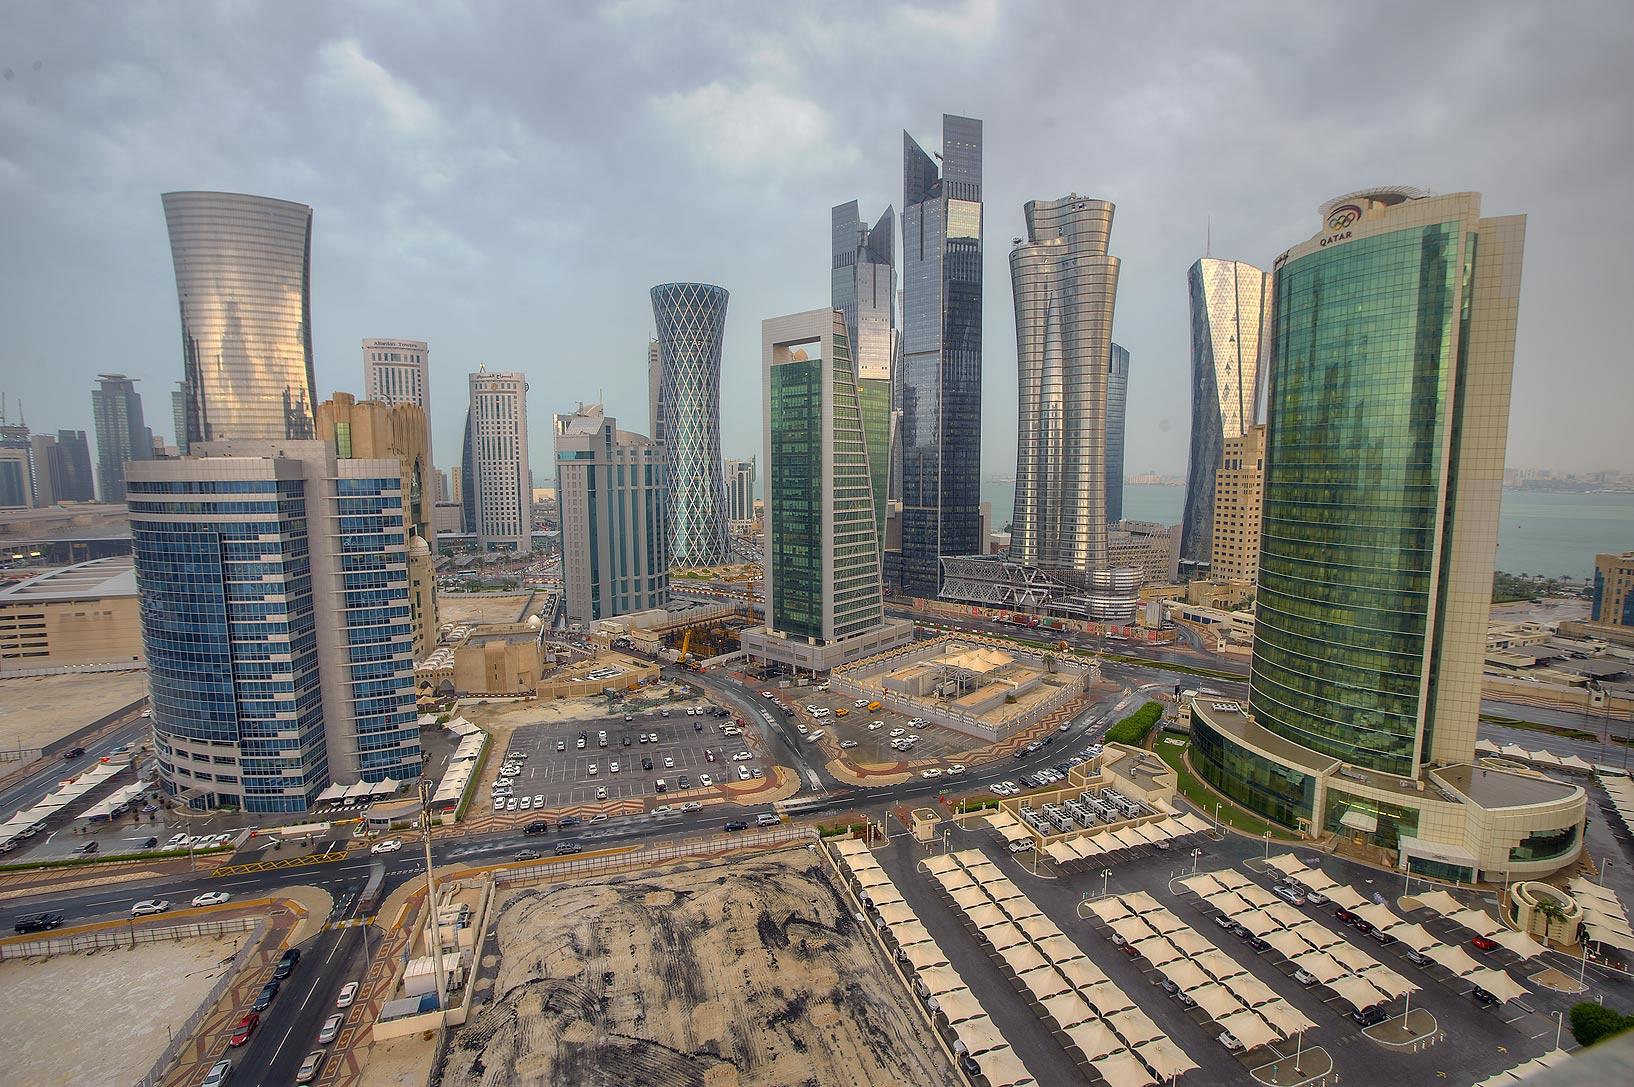 Area of West Bay from Room 1604 of Dareen Tower after a rain. Doha, Qatar